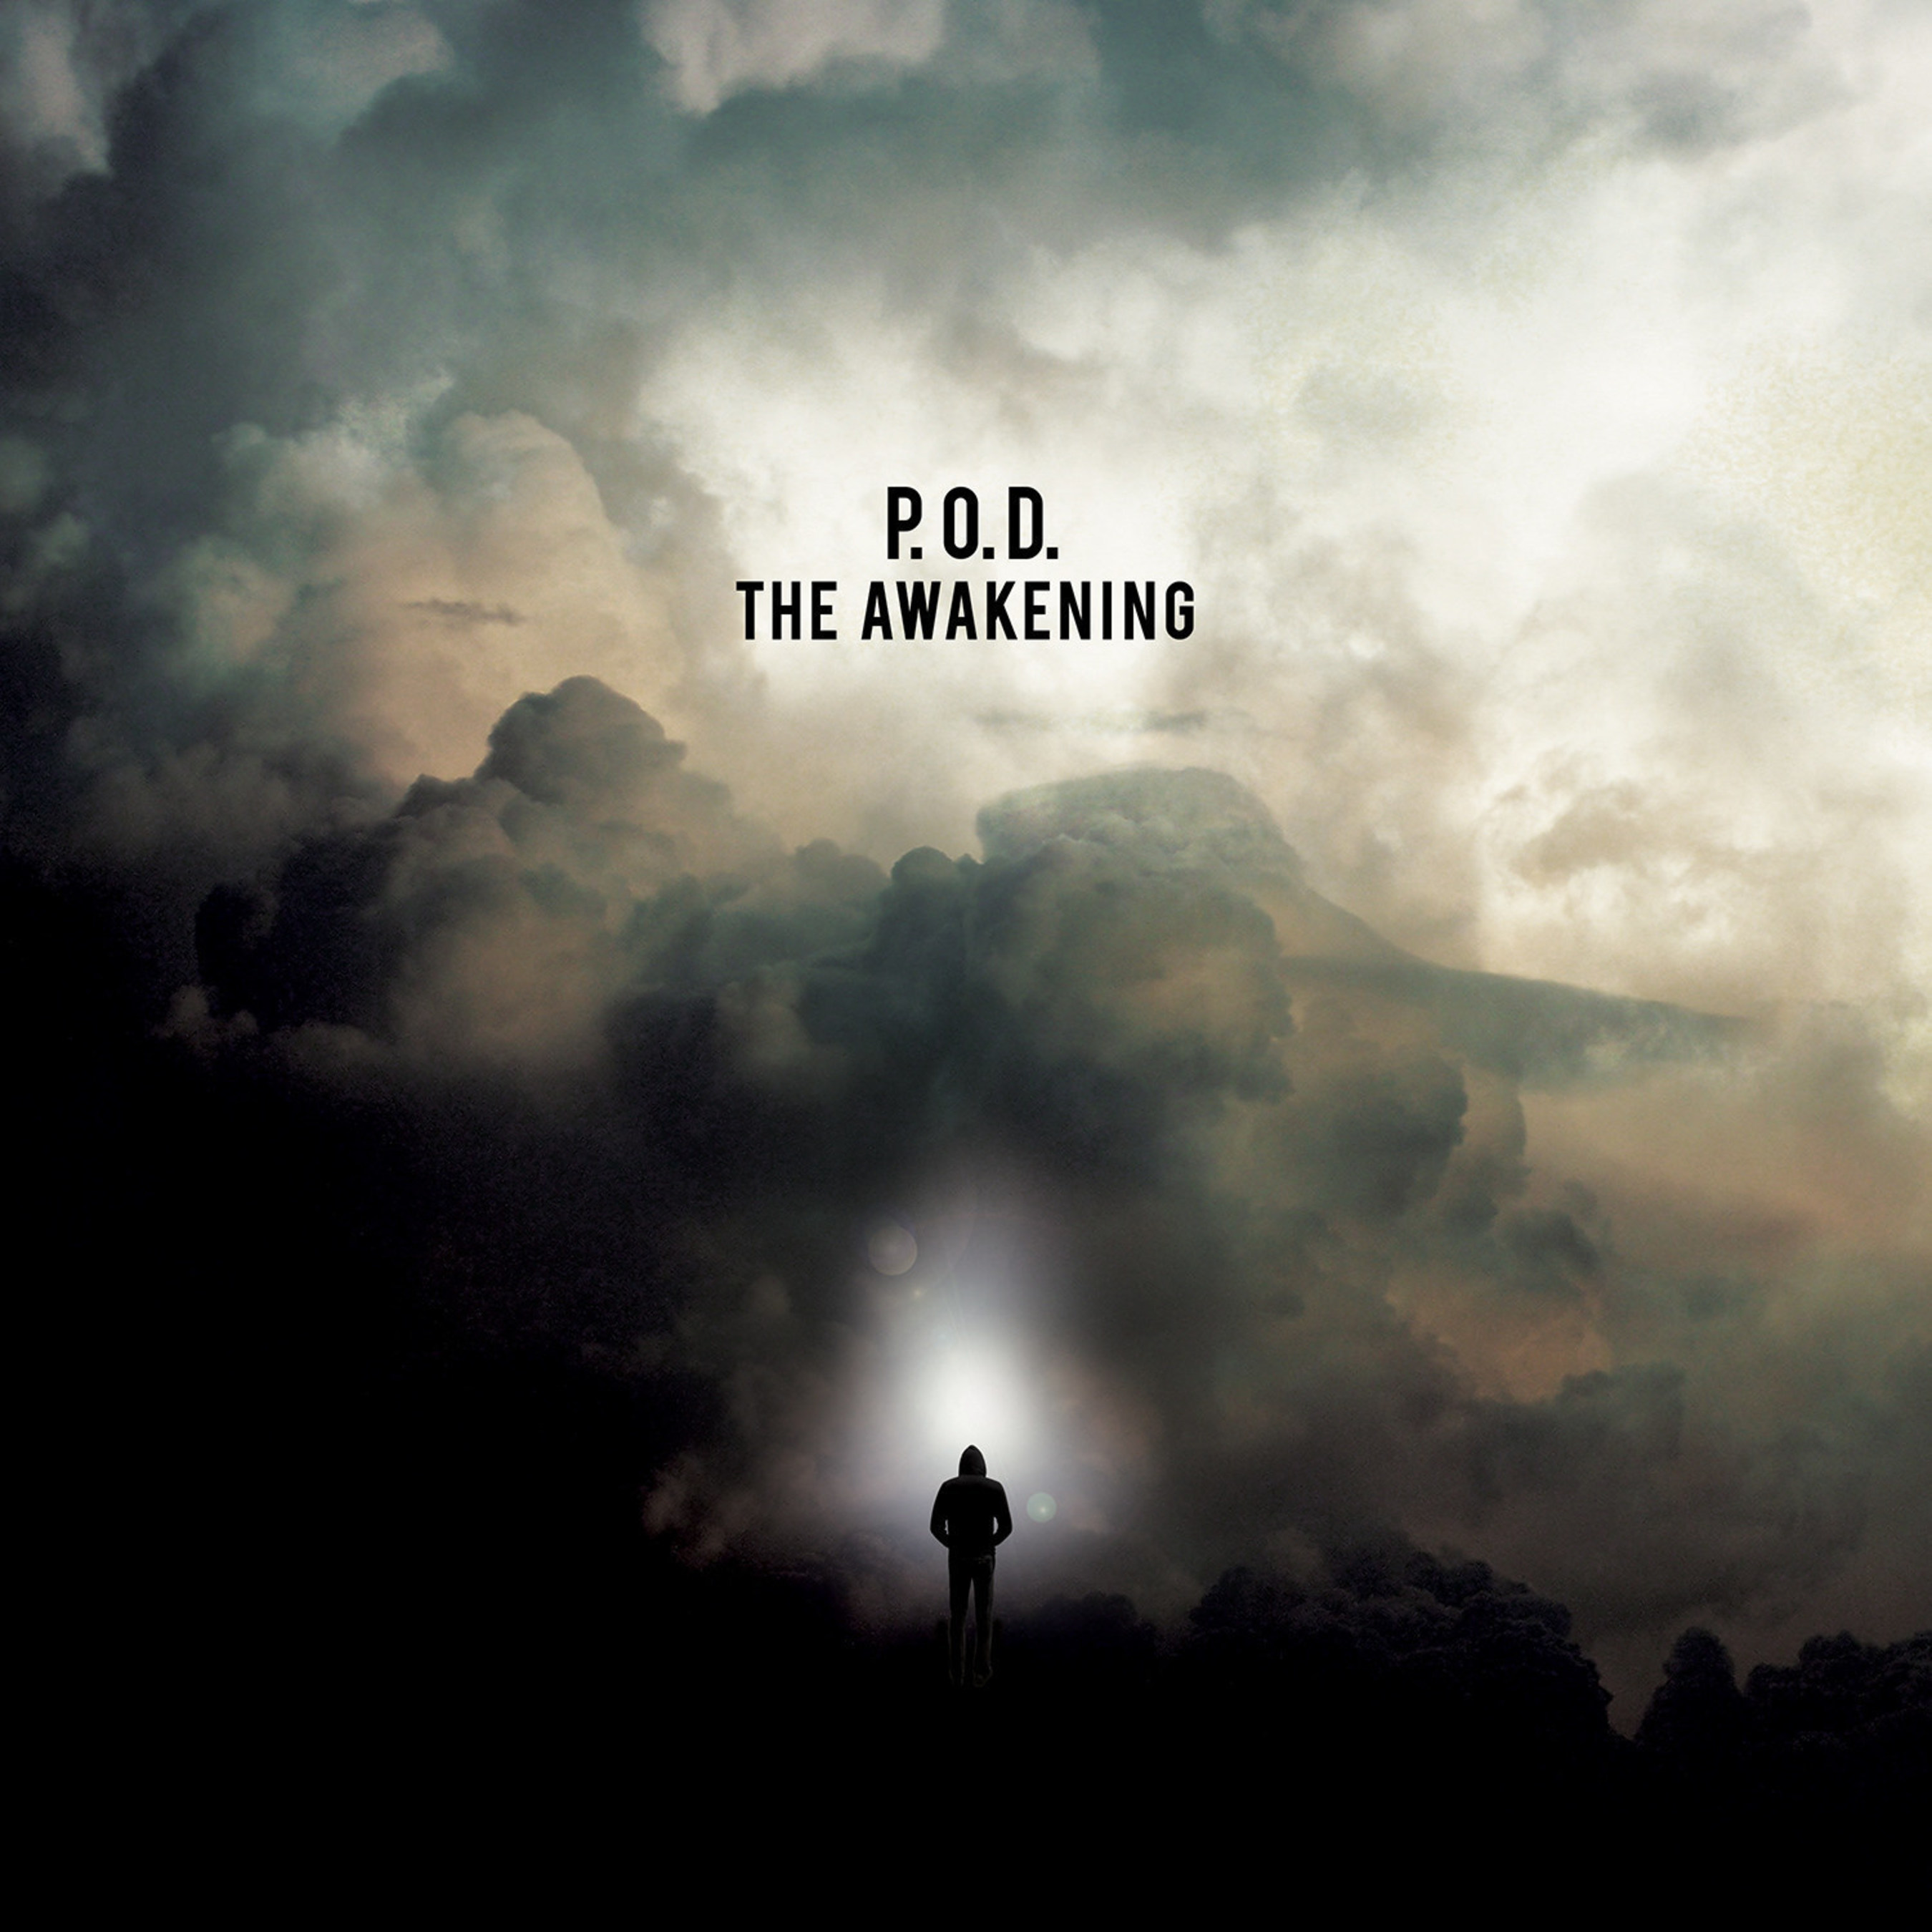 P.O.D.'s New Studio Album, 'The Awakening,' To Be Released Worldwide On August 21 By T-Boy/UMe